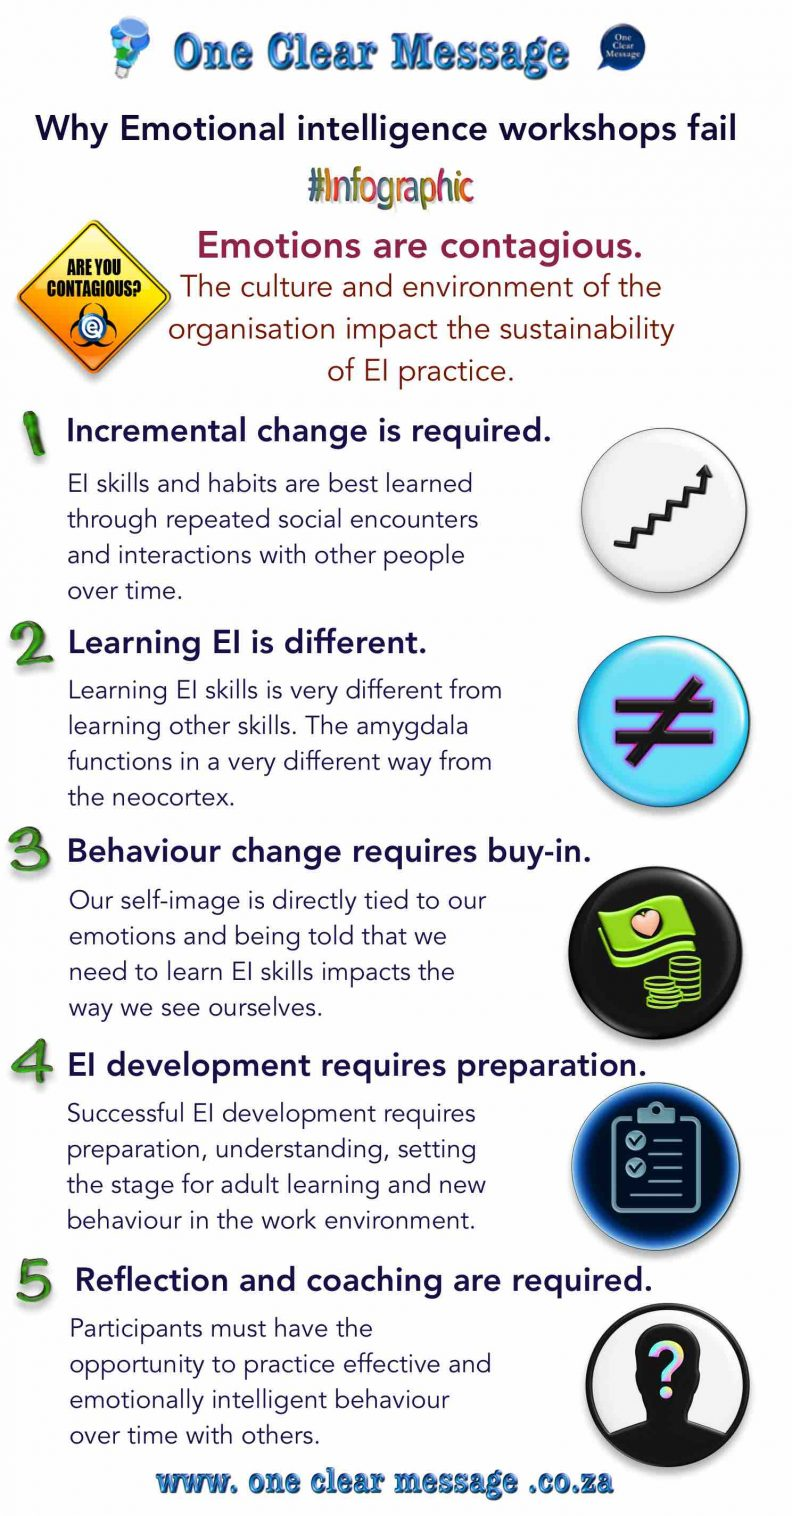 Why Emotional intelligence workshops often fail Infographic